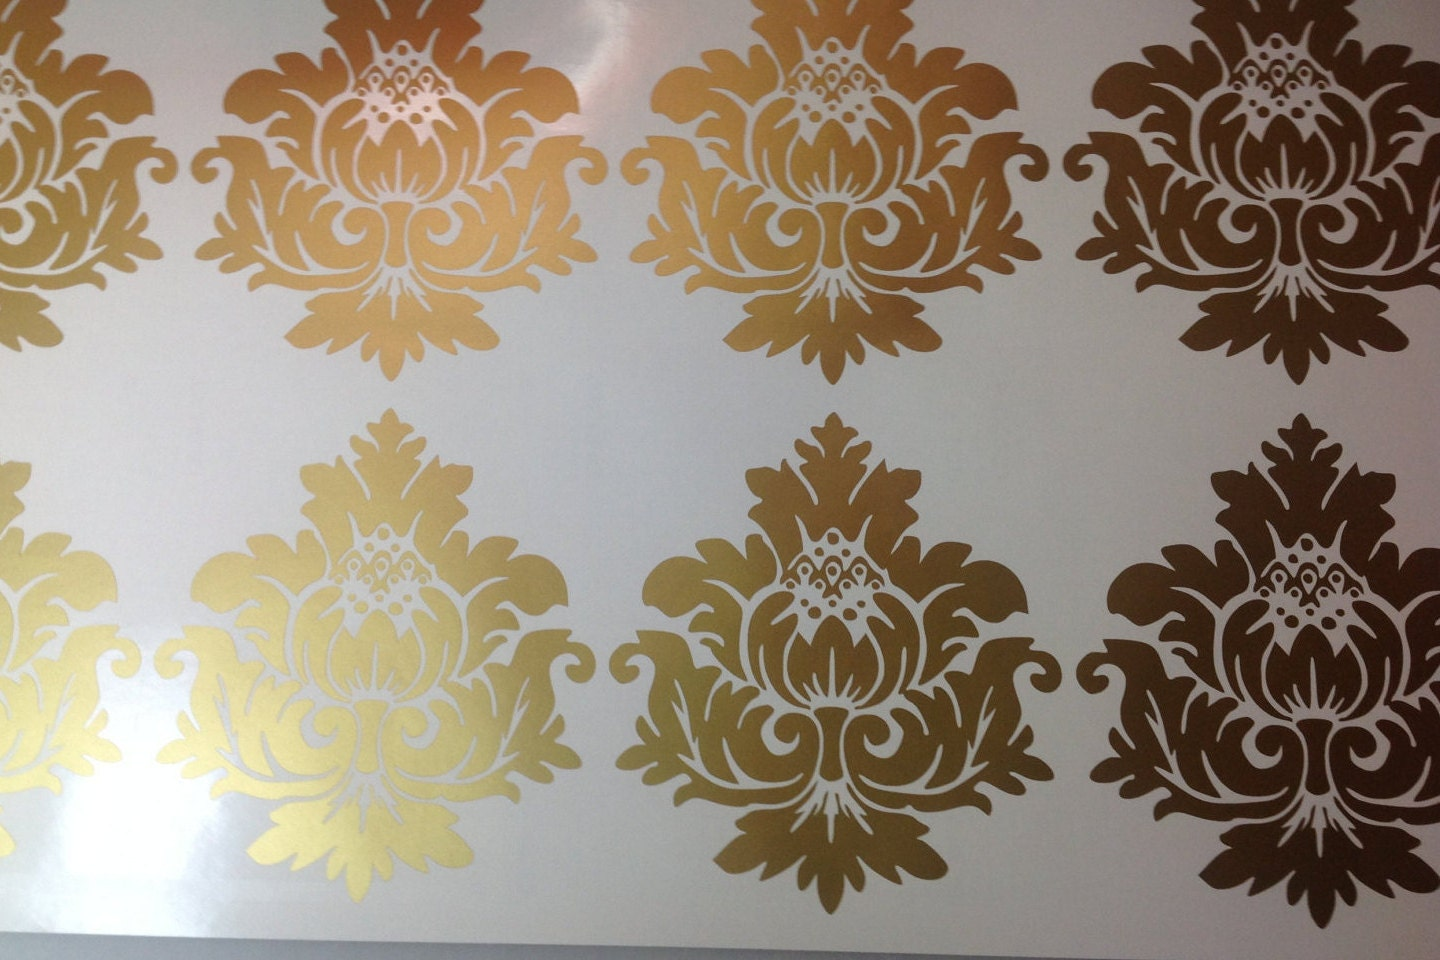 Gold Vinyl Wall Decals Scroll Damask Wall Pattern Graphics - Vinyl decals for walls etsy